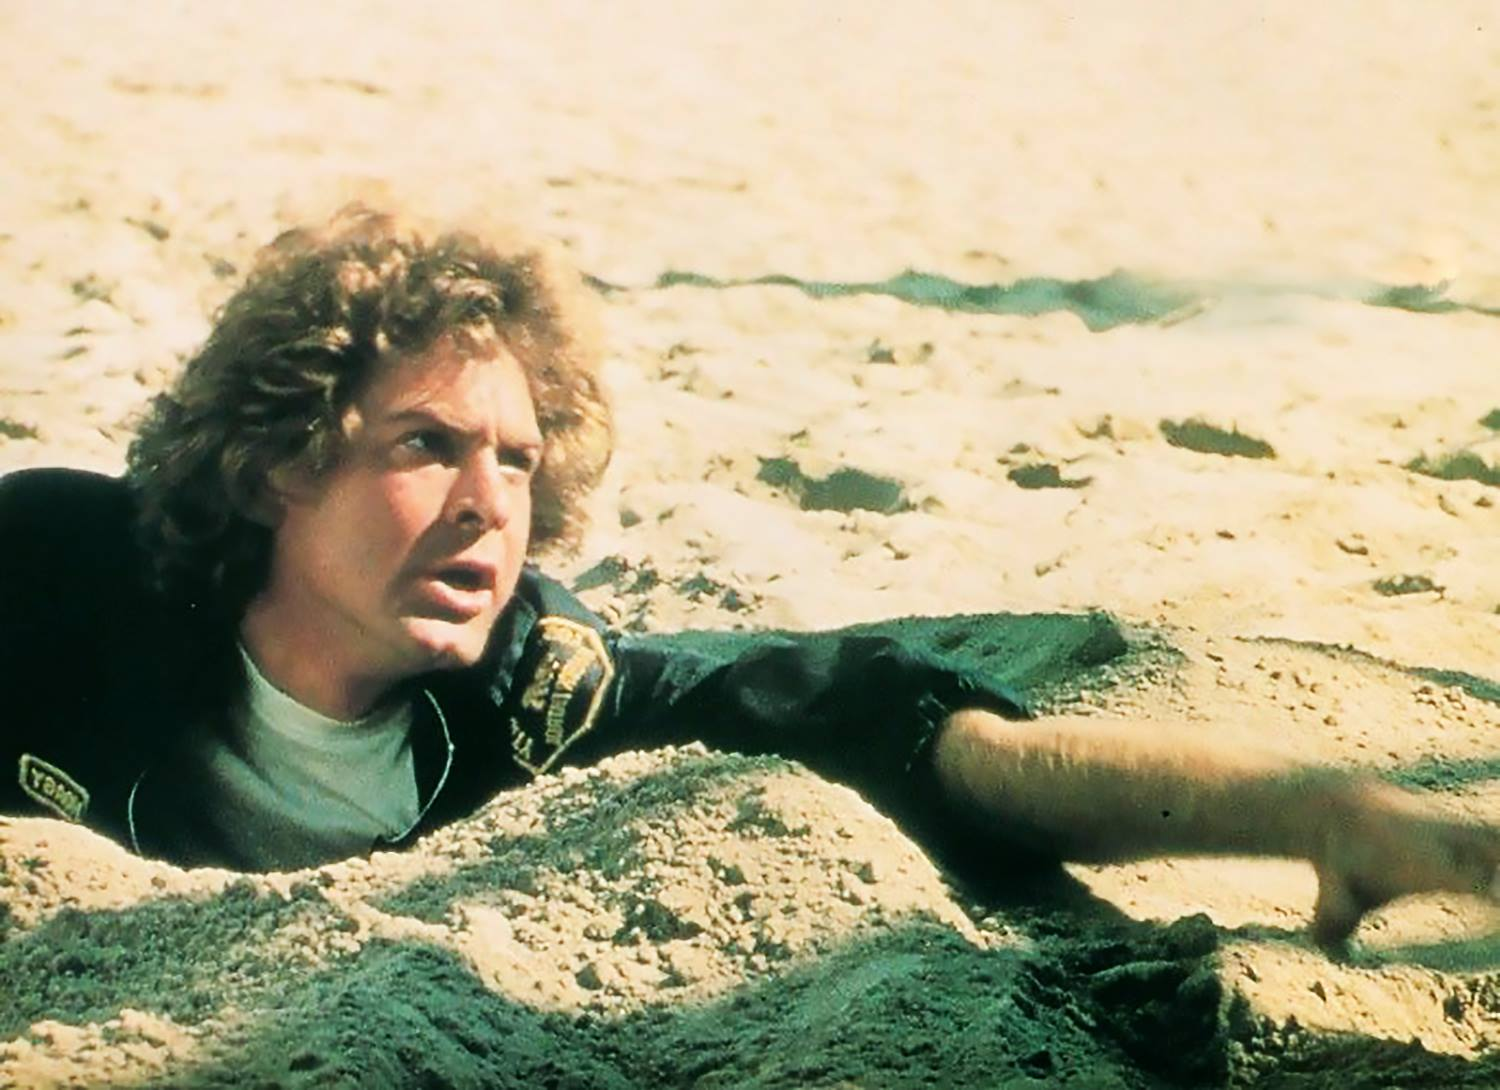 blood beach 1 - Blood Beach - 35 Years Later And Still Cannot Get To The Water